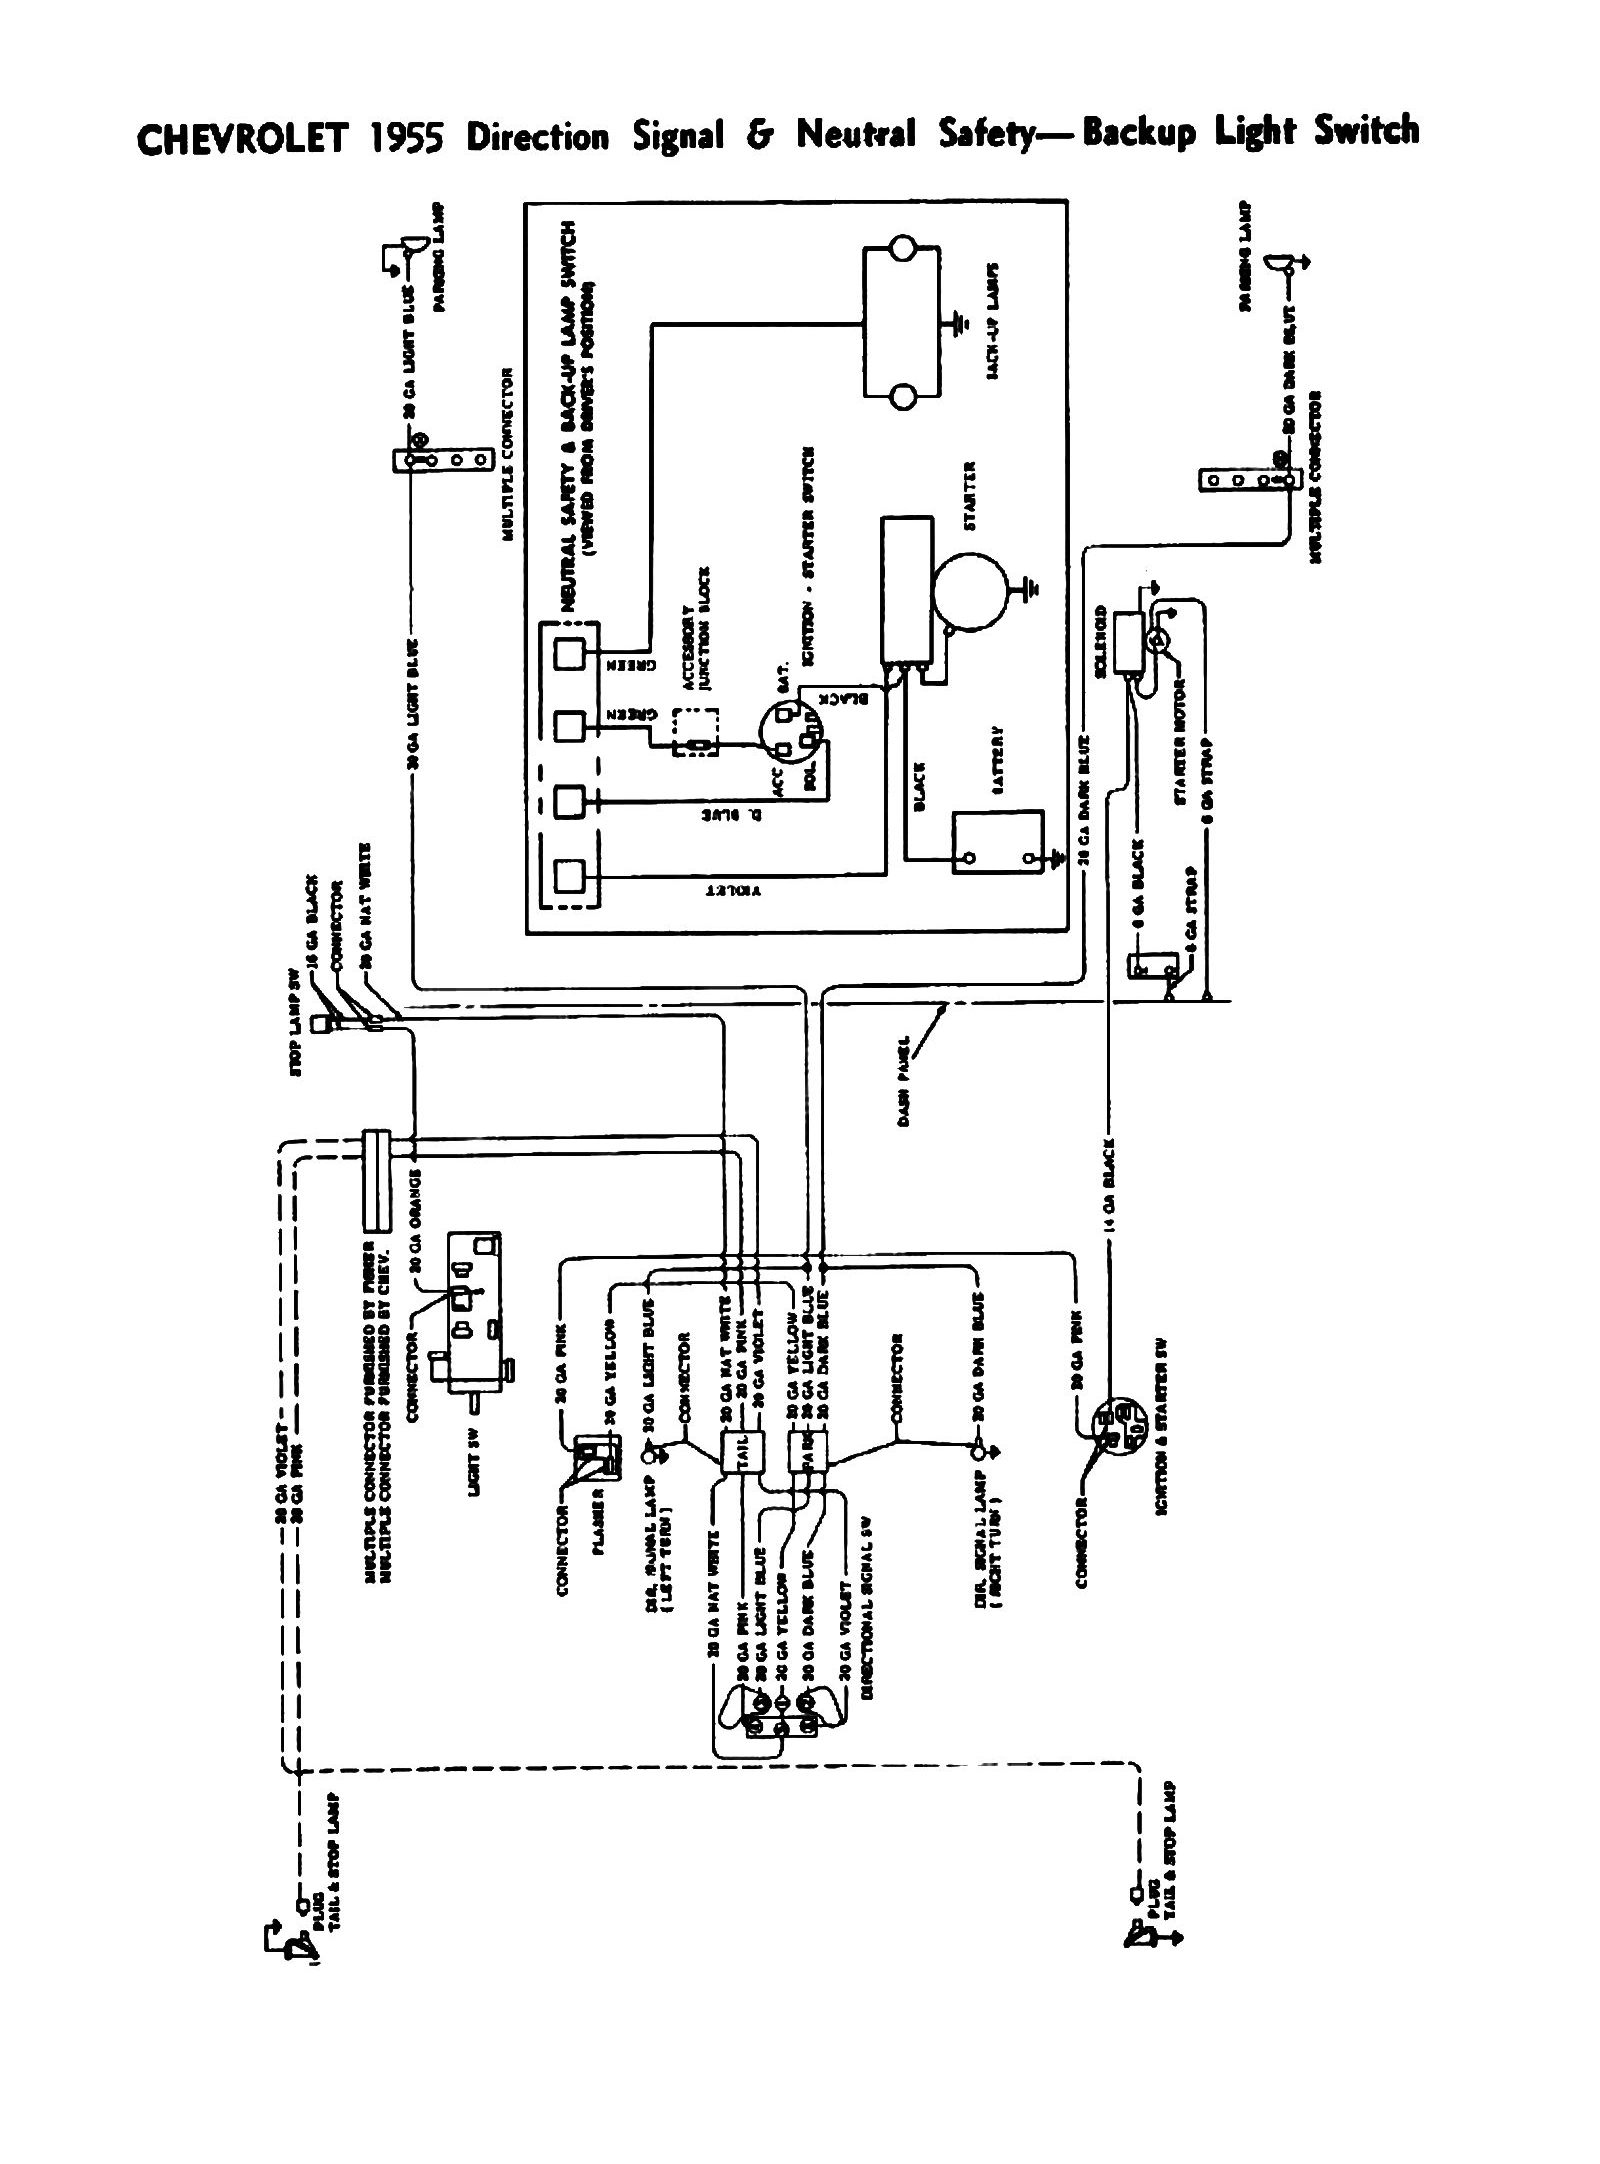 wiring diagram for 1955 chevy bel air  u2013 powerking co